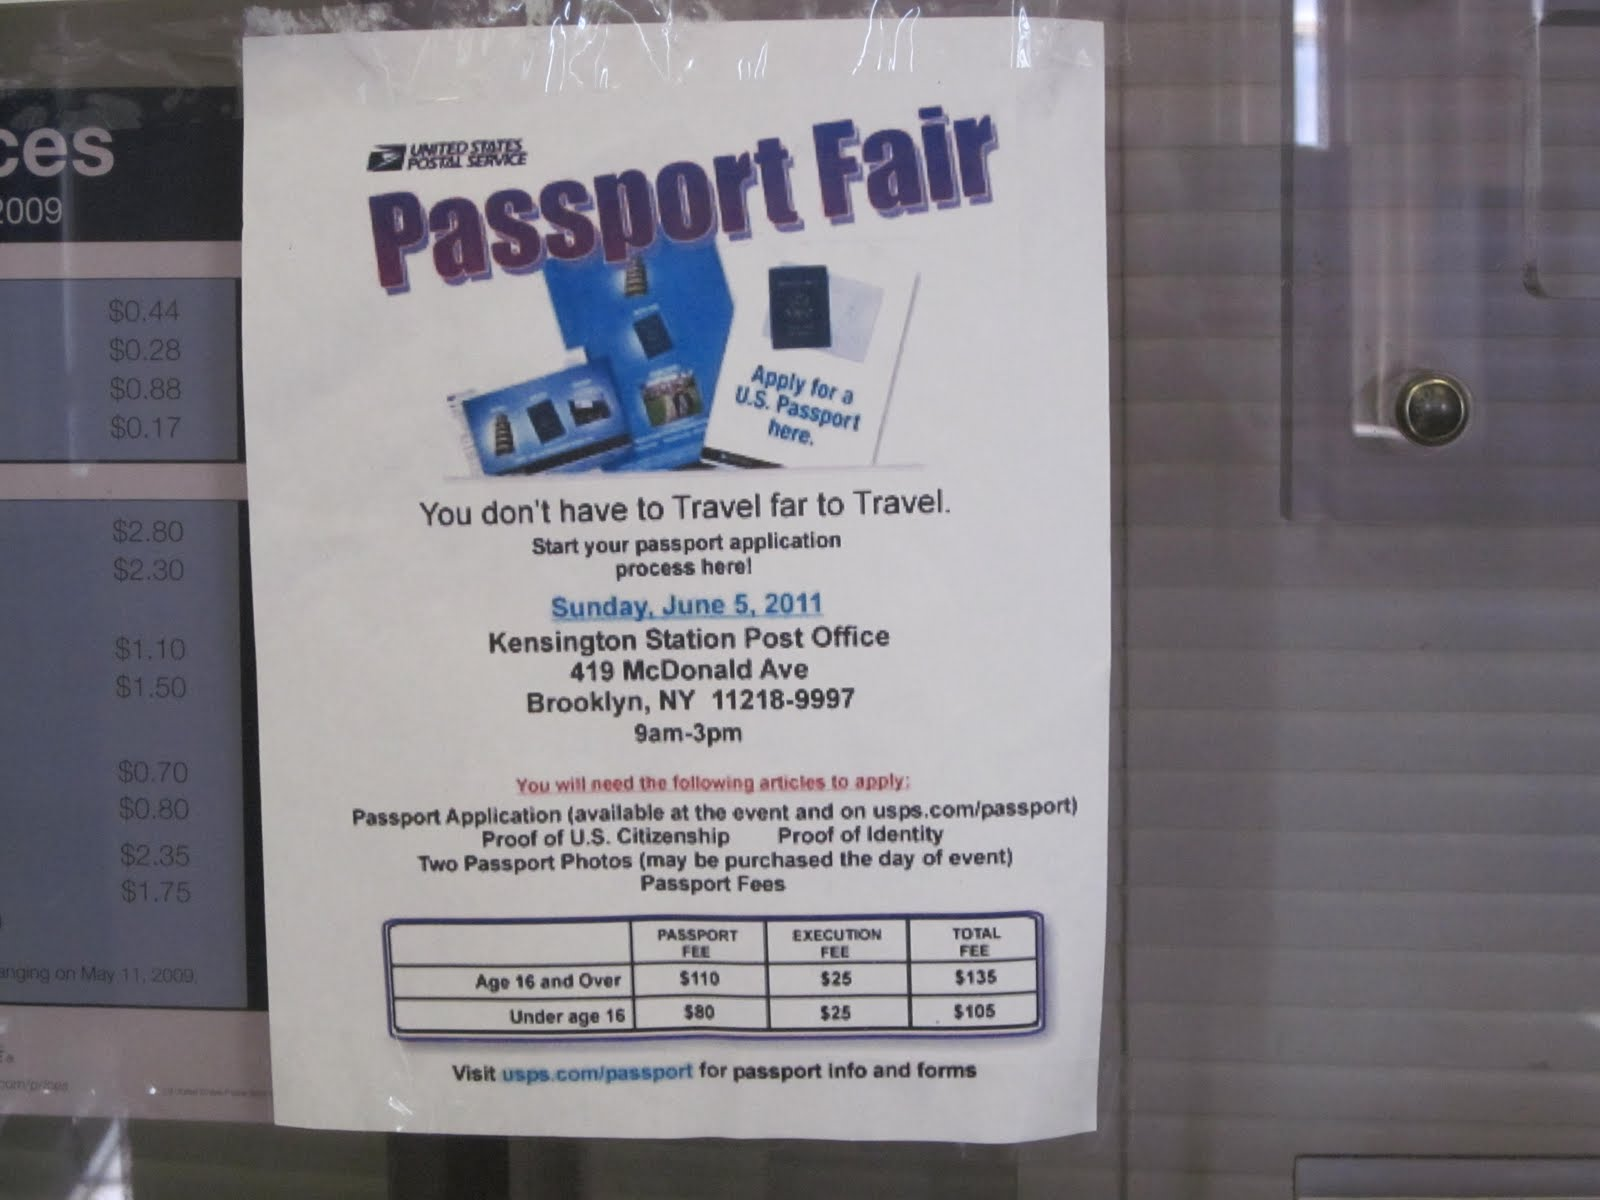 KARMABrooklyn Blog KENSINGTON POST OFFICE PASSPORT FAIR FLYER